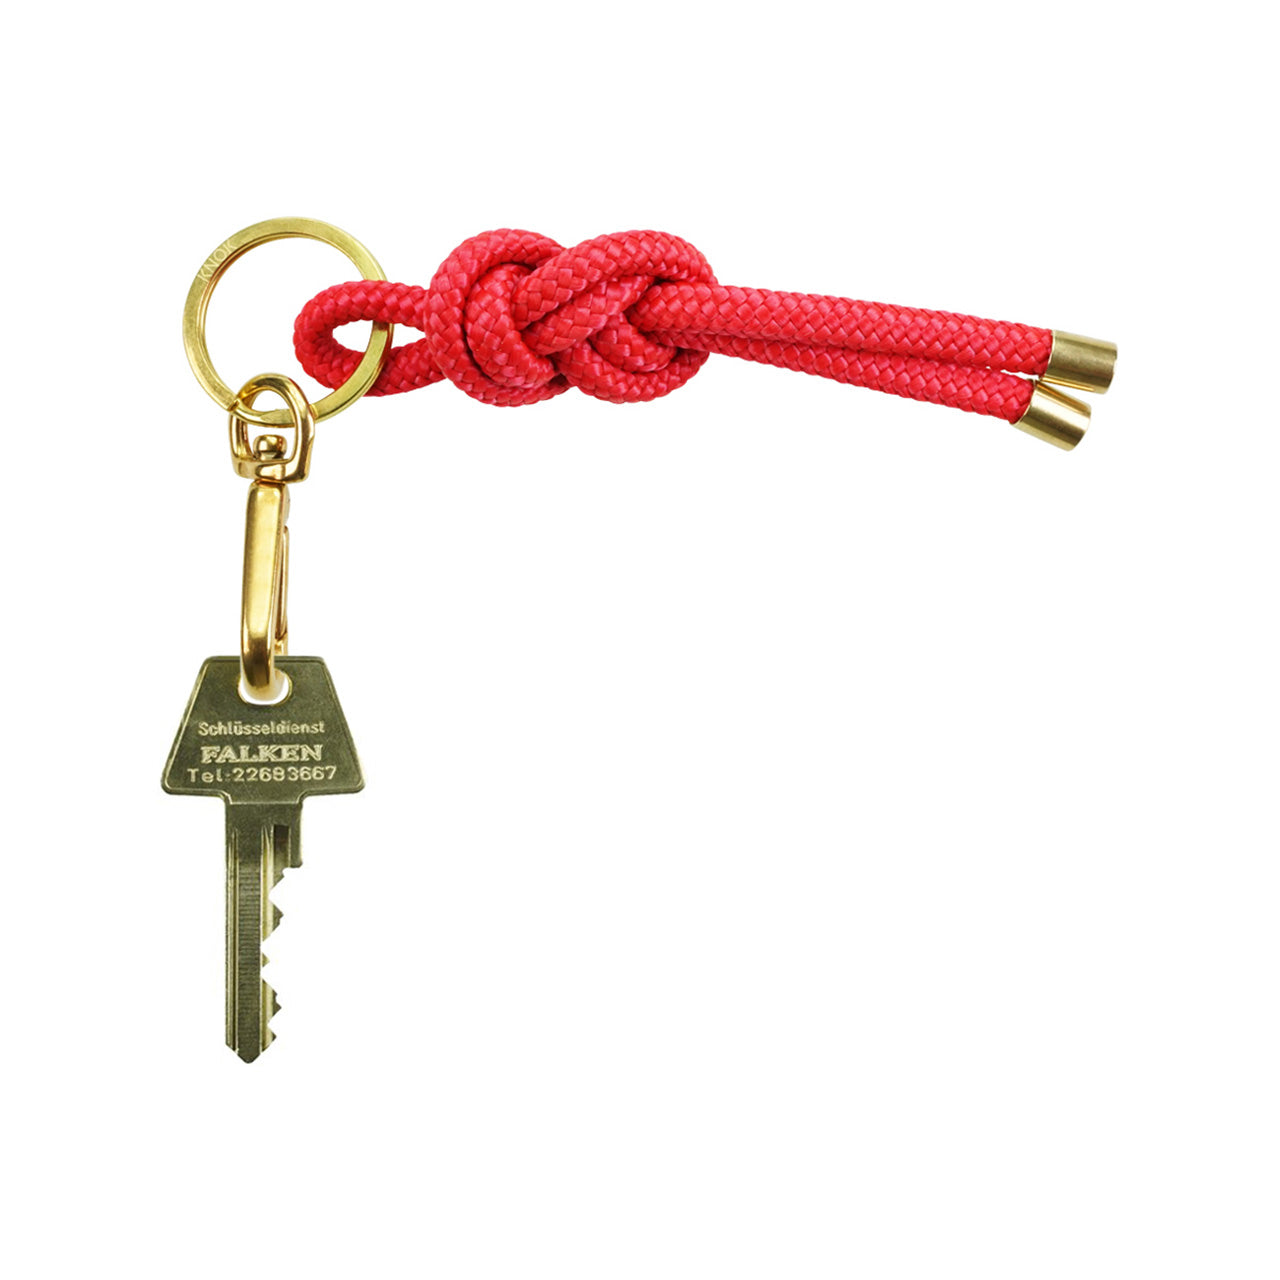 KNOK-KEY-KNOT-Red-KNOK STORE